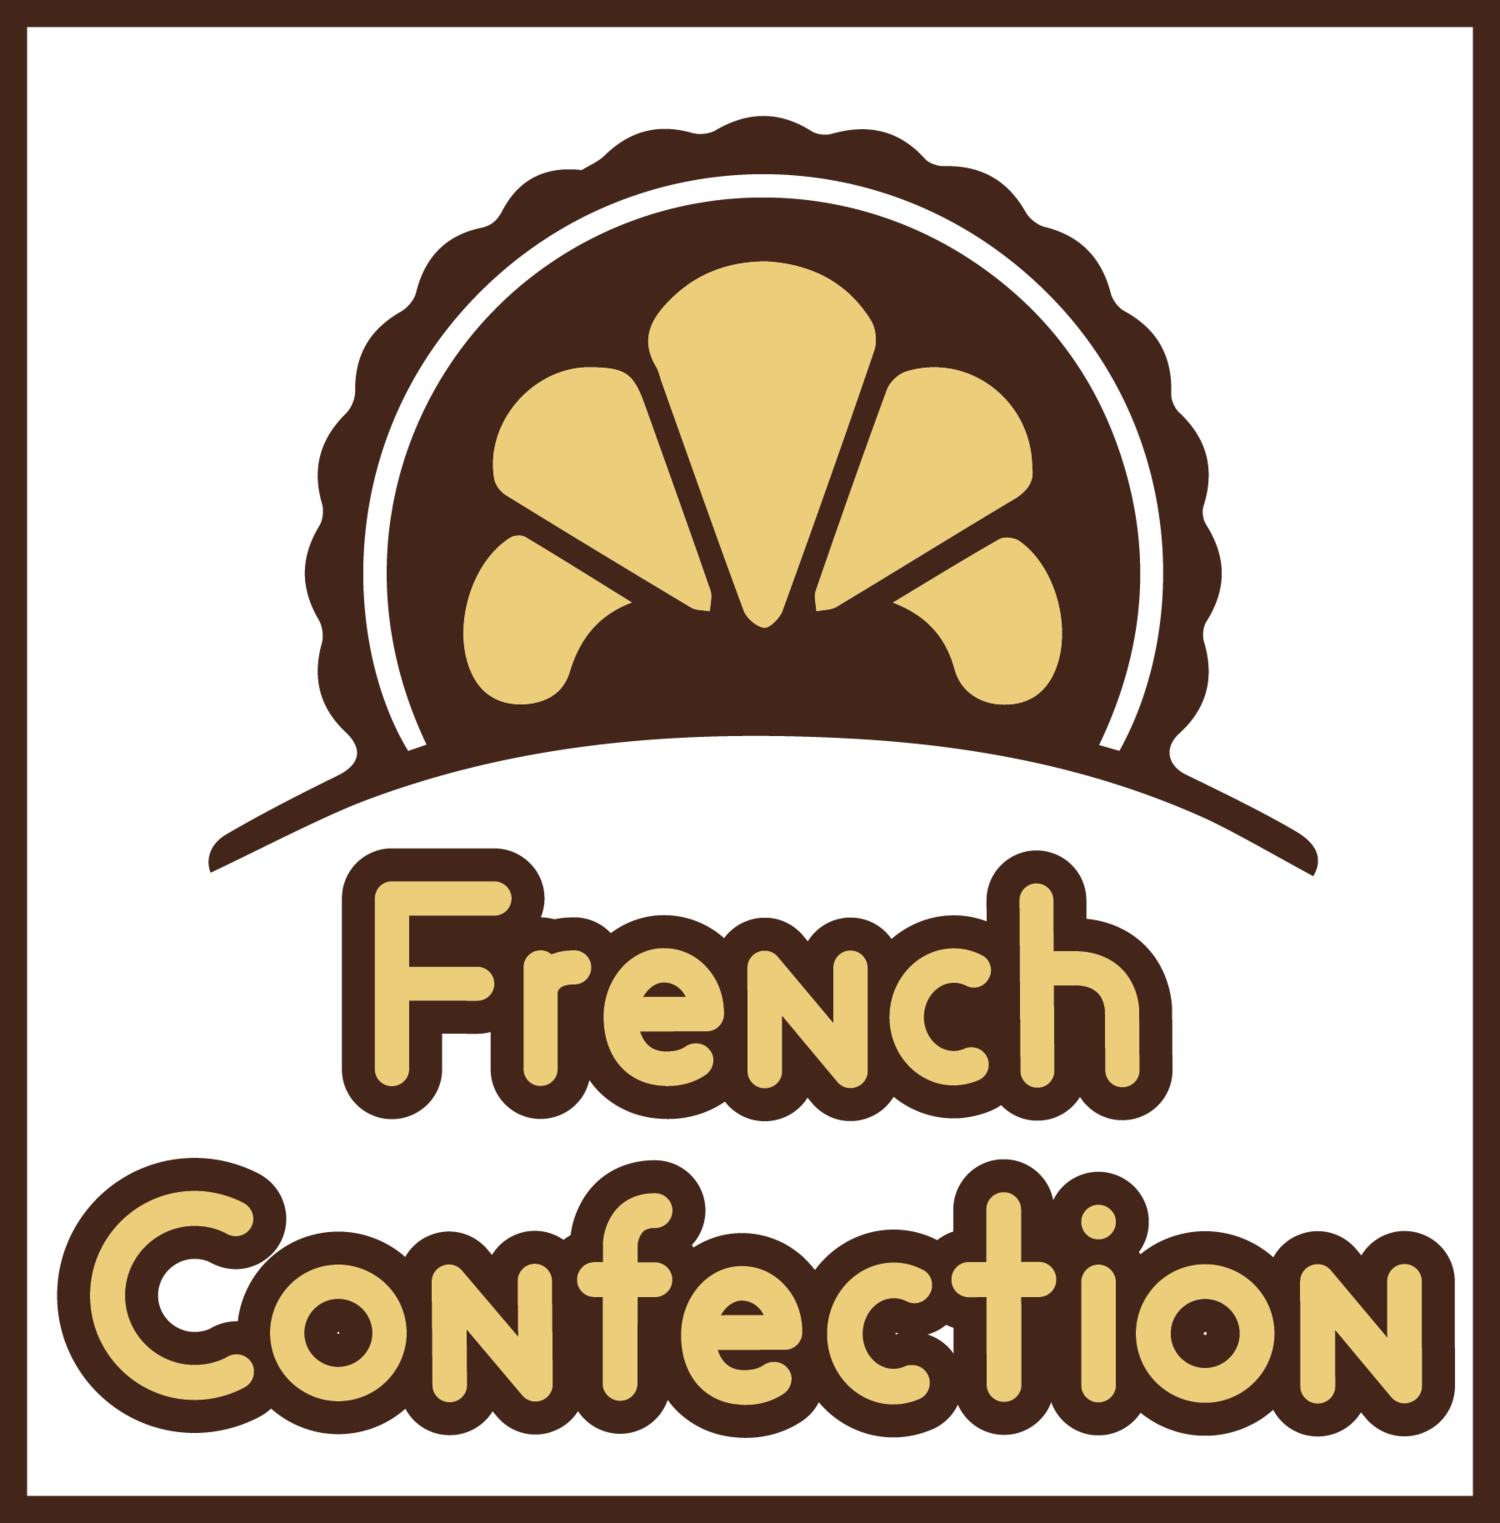 French Confection